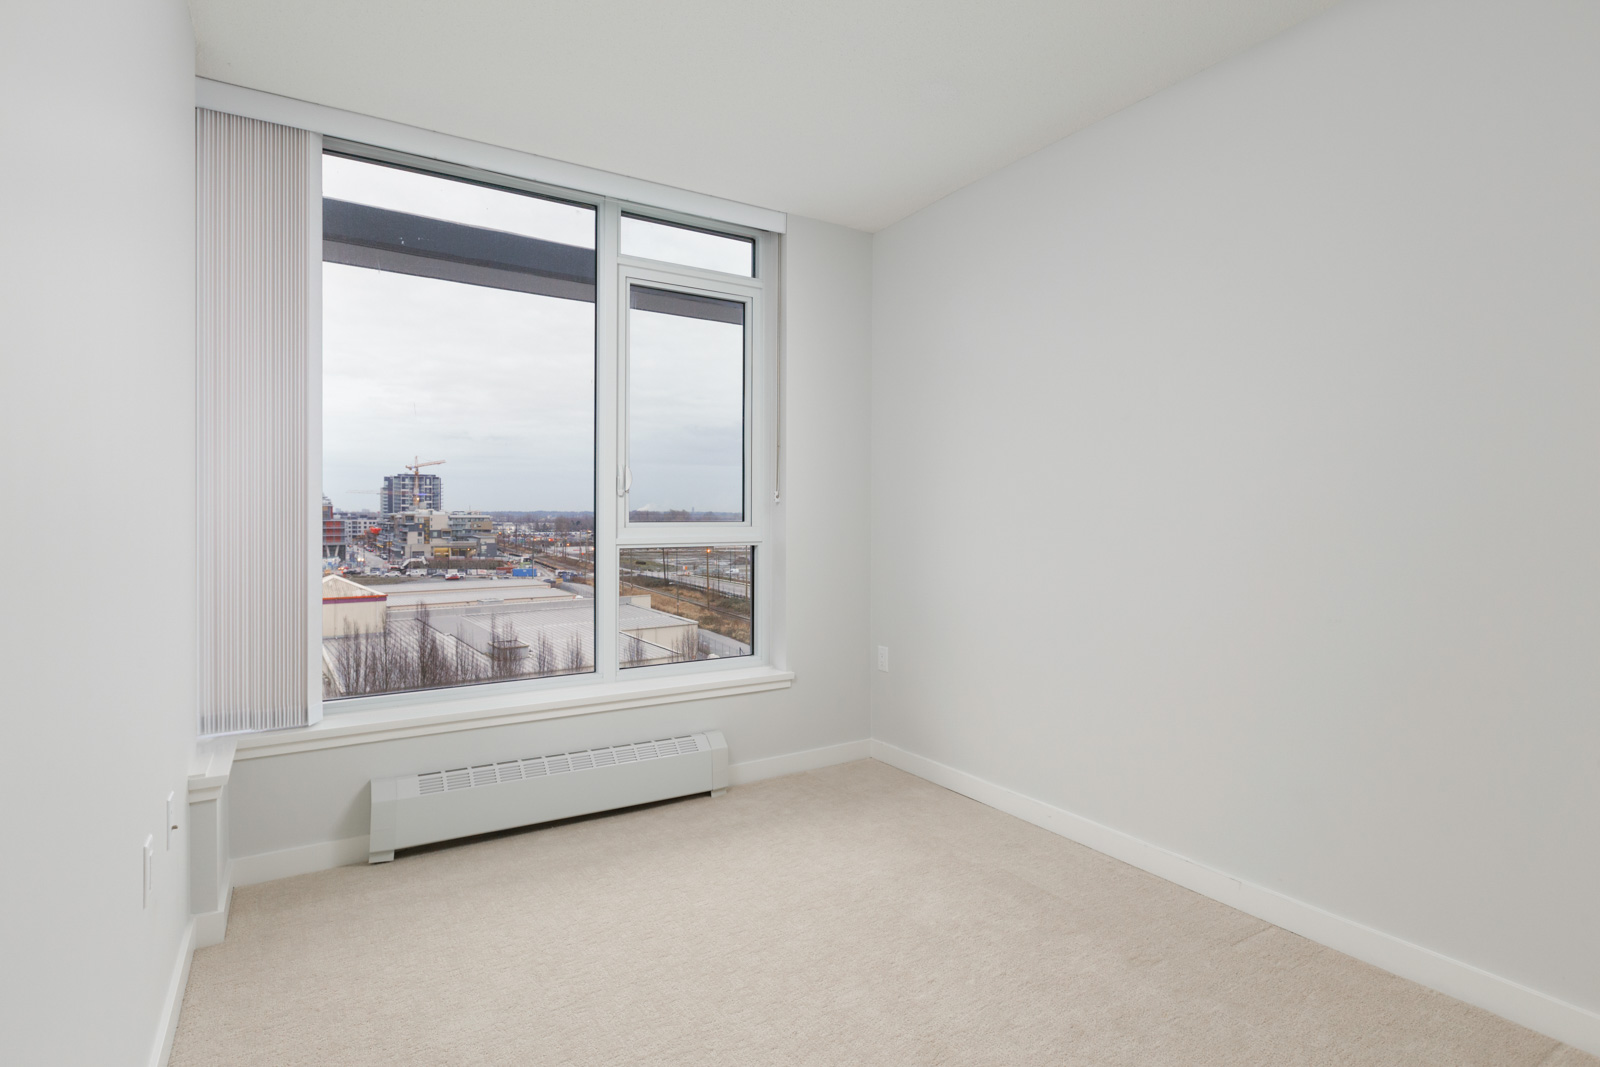 diagonal view of empty condo bedroom with windows on left and white wall on right and carpeted flooring